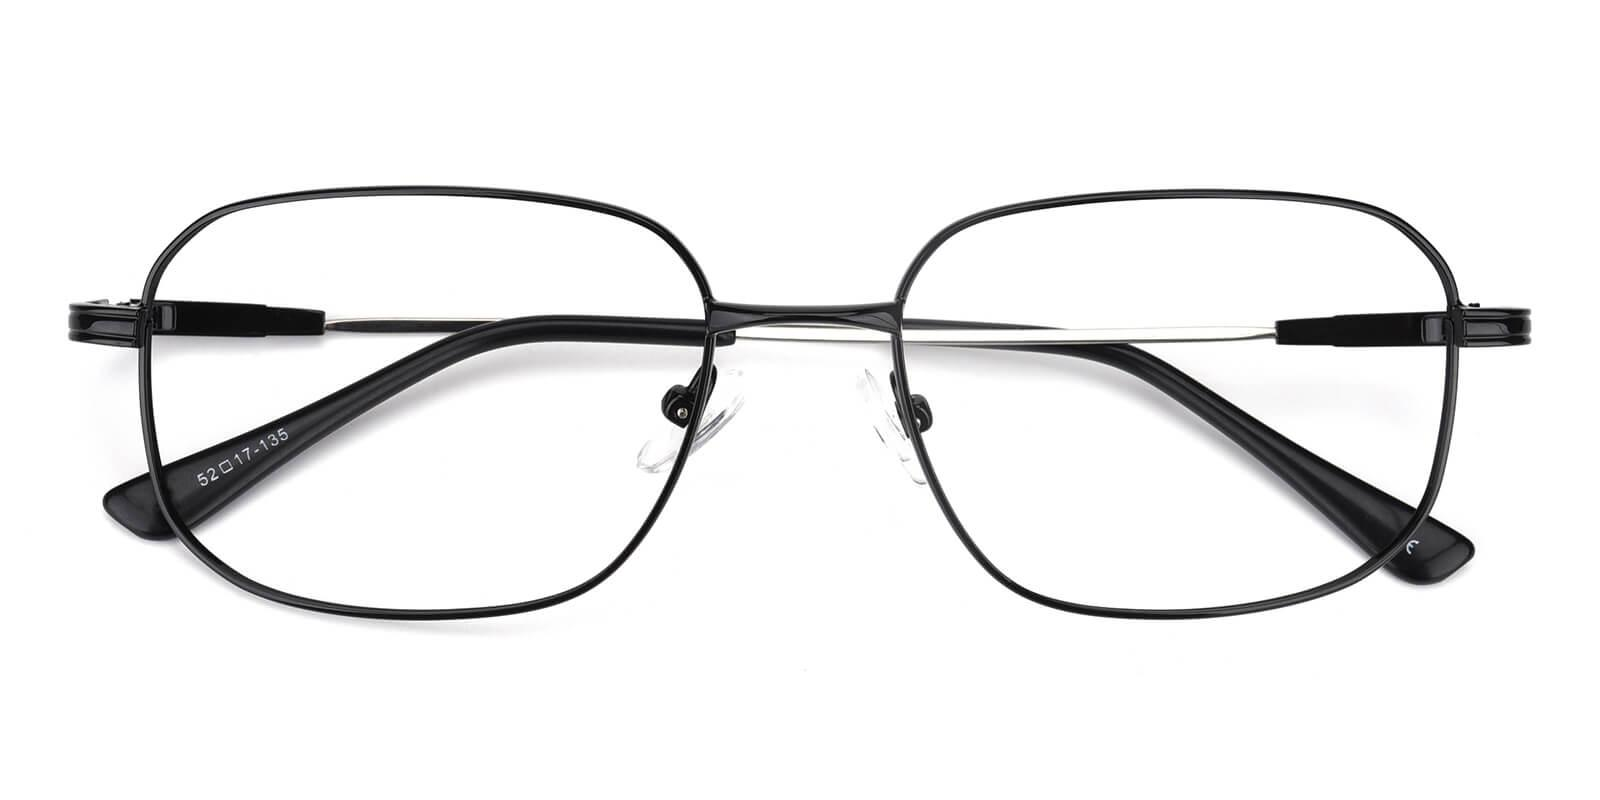 Weston-Black-Square-Metal-Eyeglasses-detail